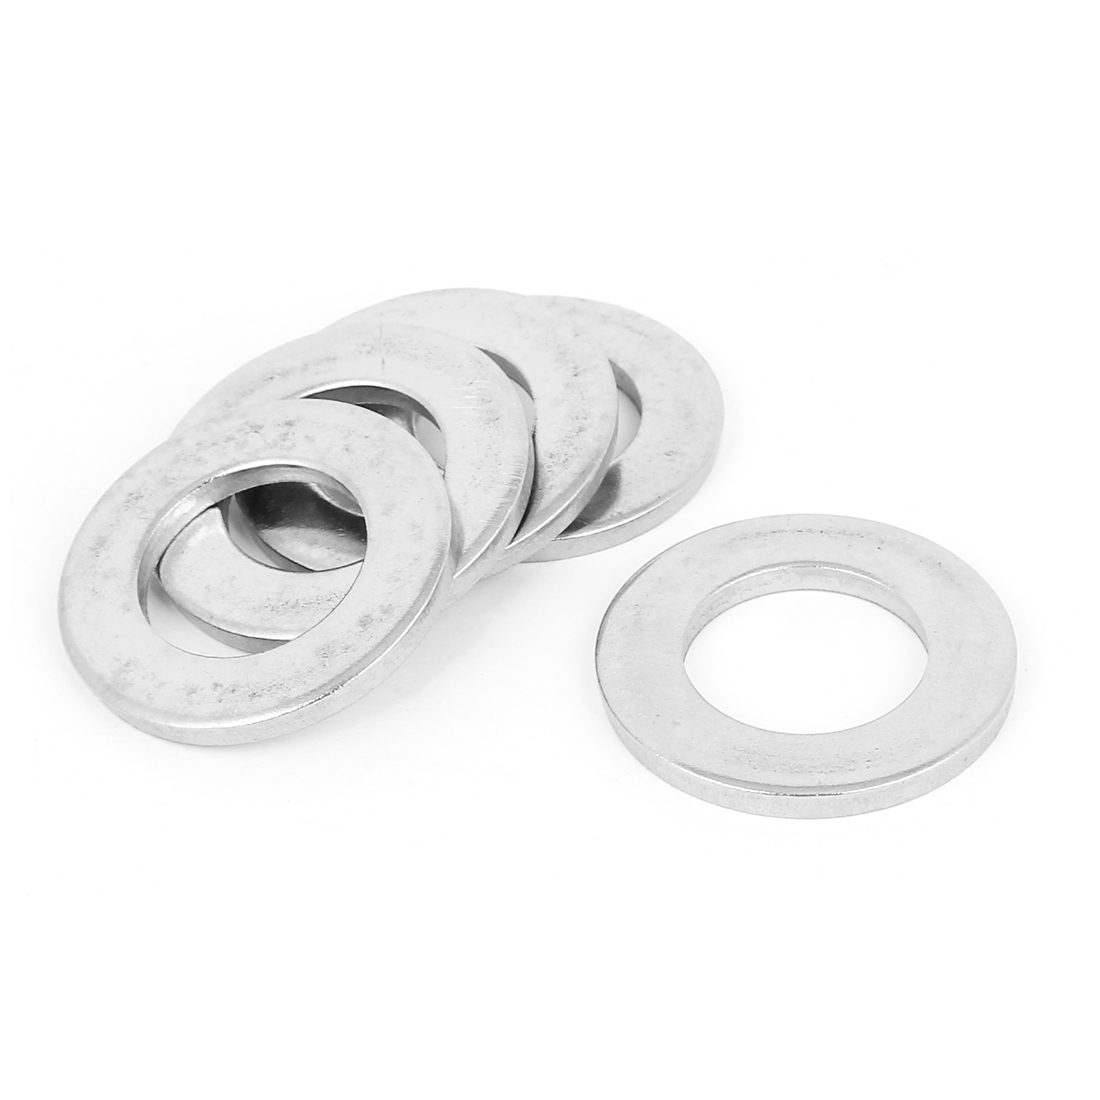 5pcs Silver Tone 316 Stainless Steel Flat Washer 28mm for Screws Bolts